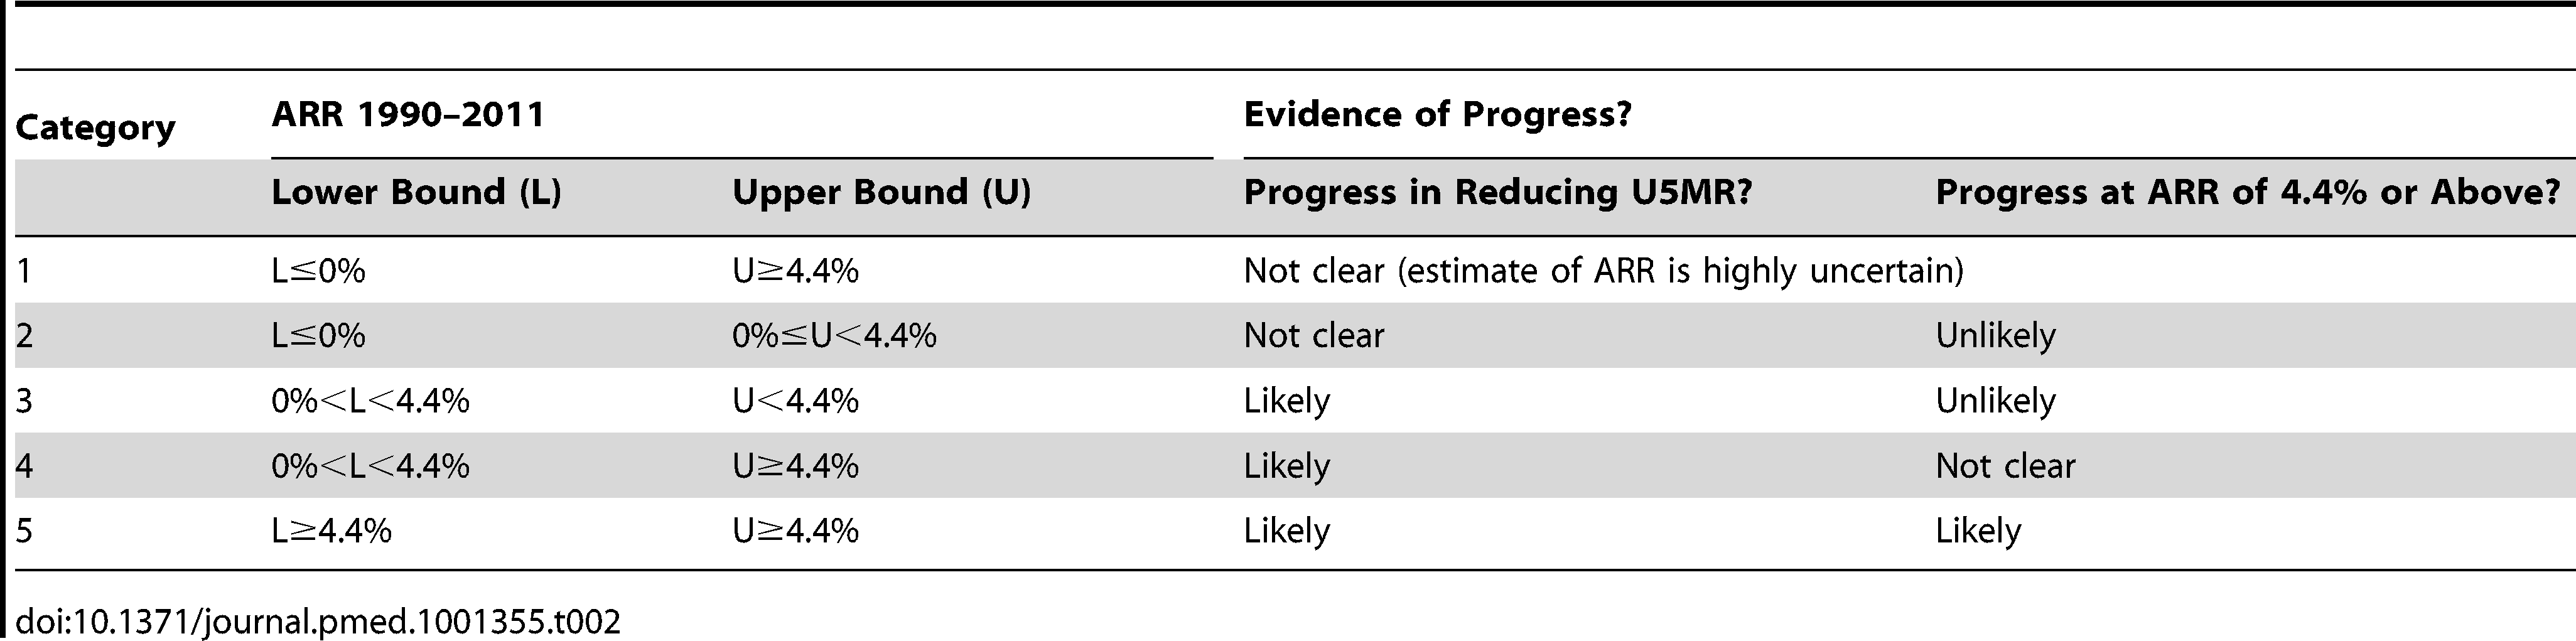 Categorization of countries based on evidence for progress in reducing U5MR and accomplishing the MDG 4 target of an ARR of 4.4% from 1990 to 2011.